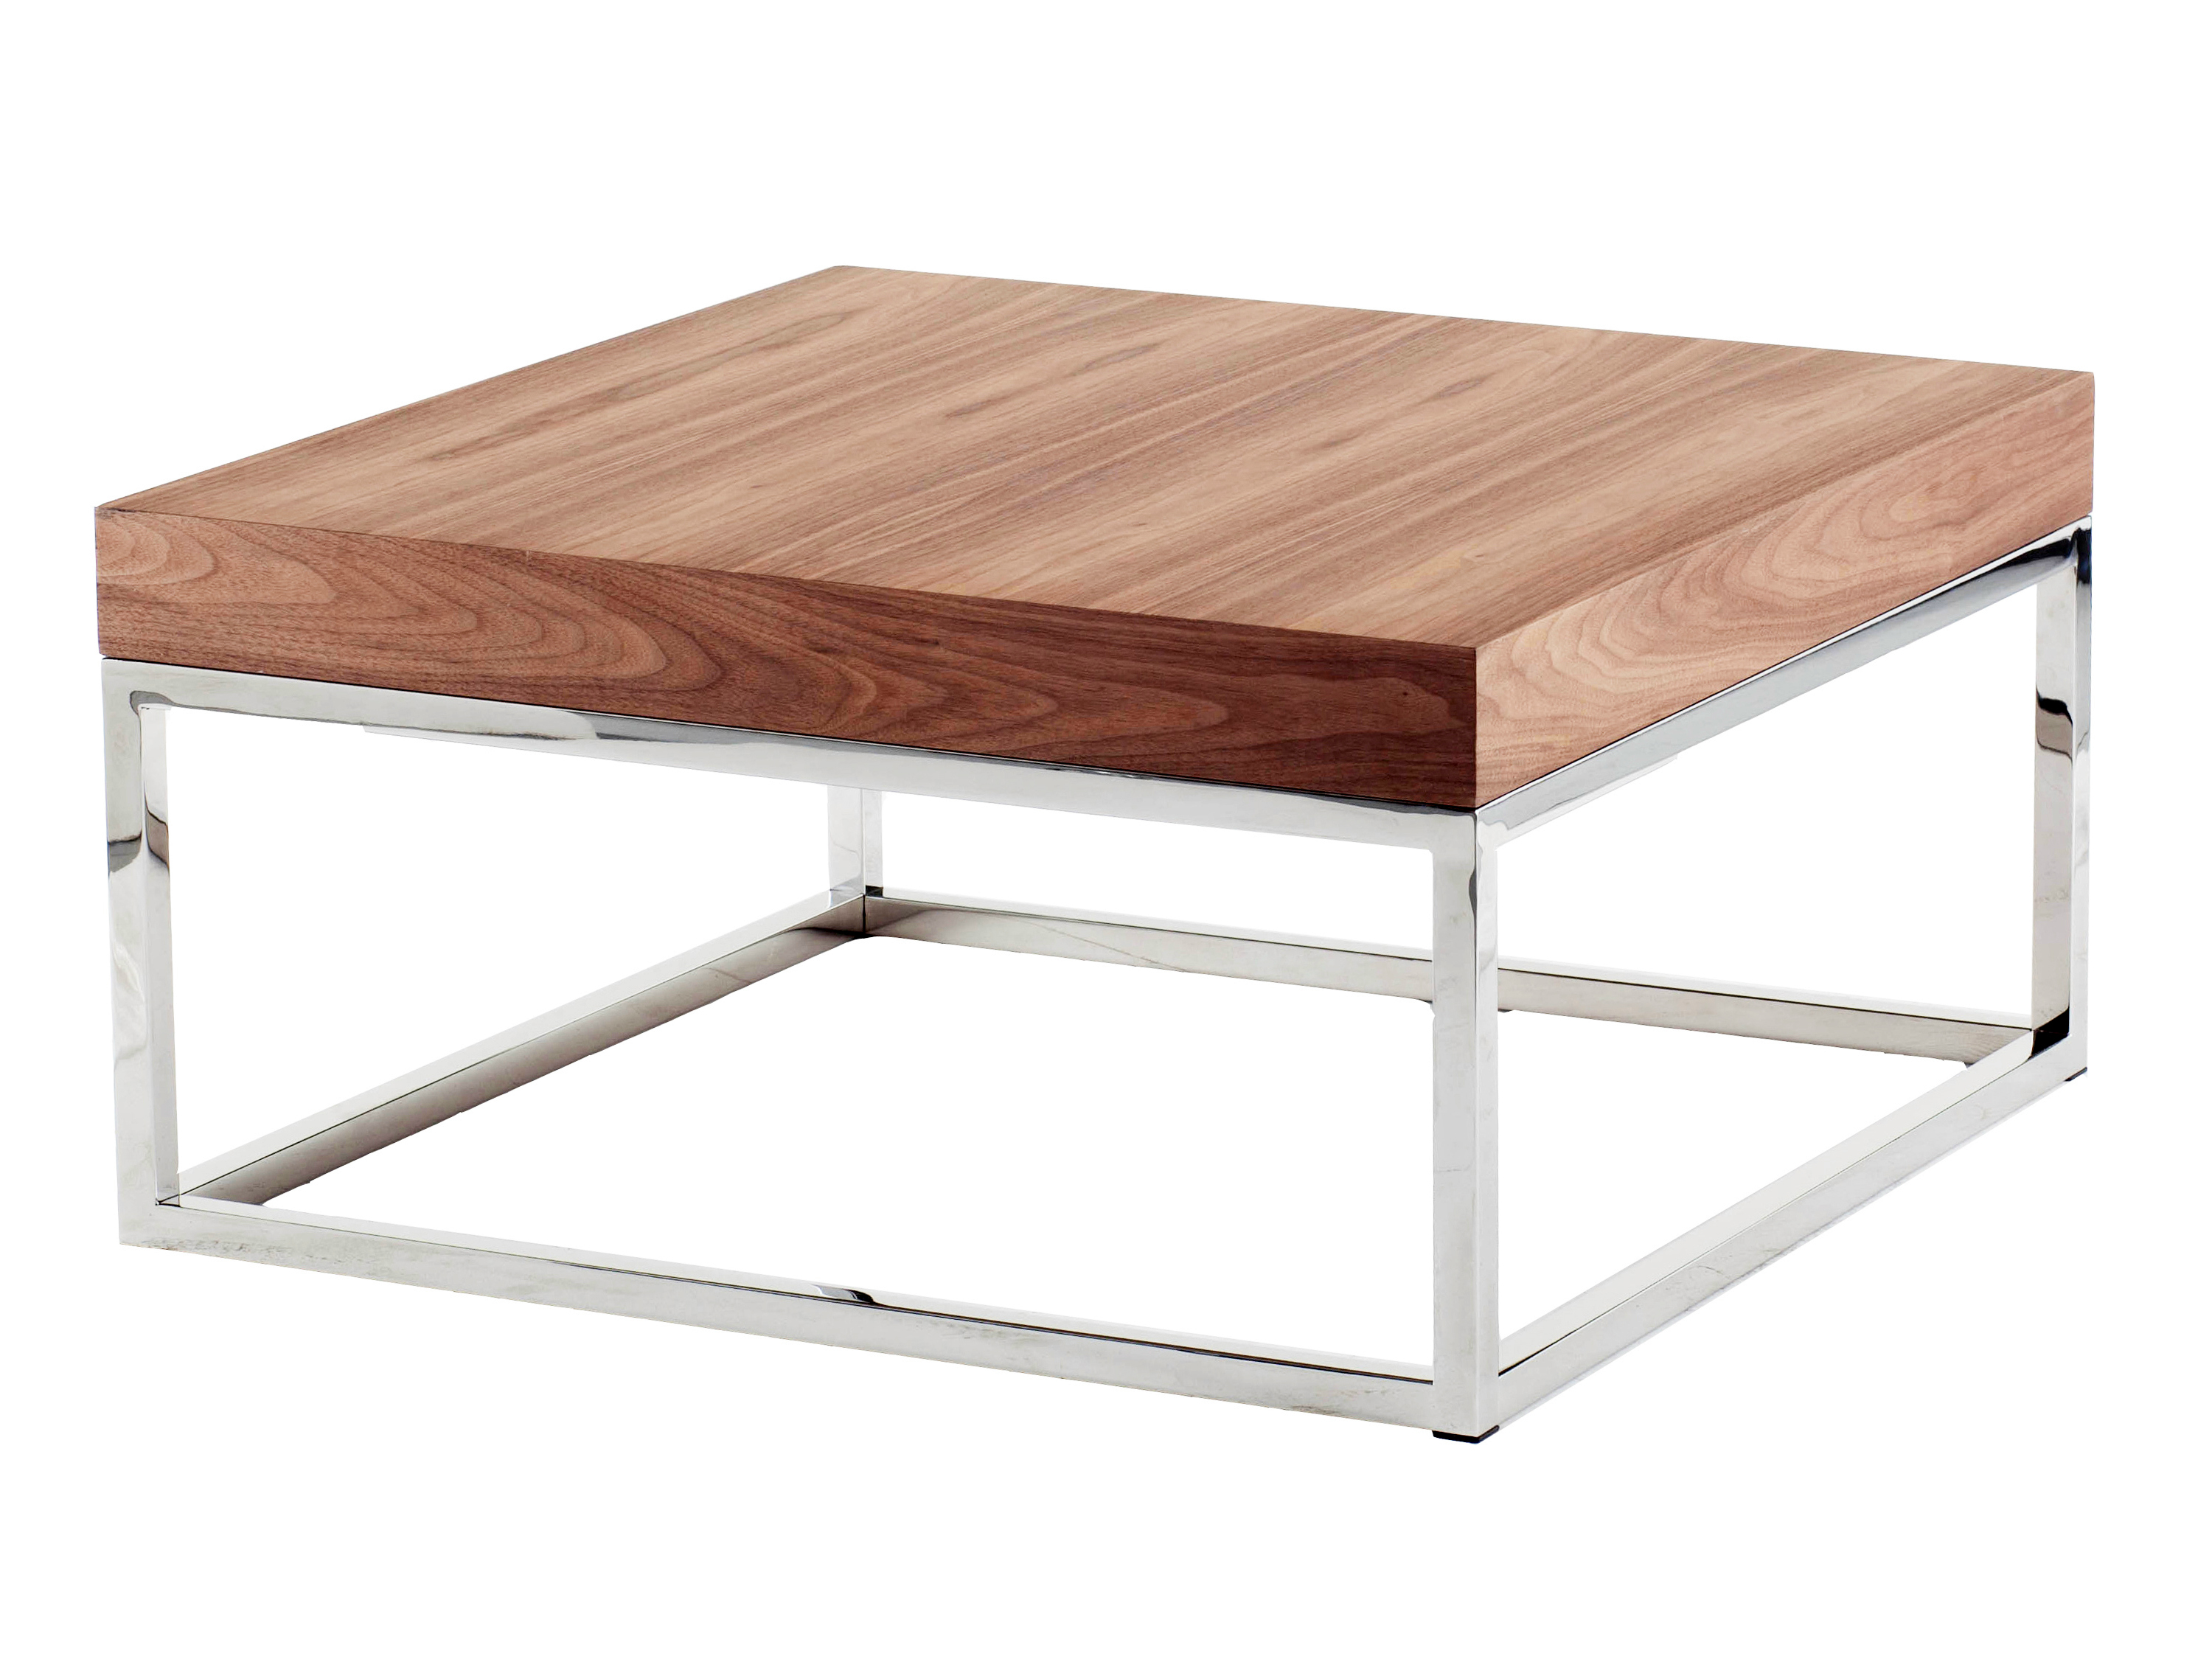 Azon square coffee table by azea design victor caetano Low coffee table square